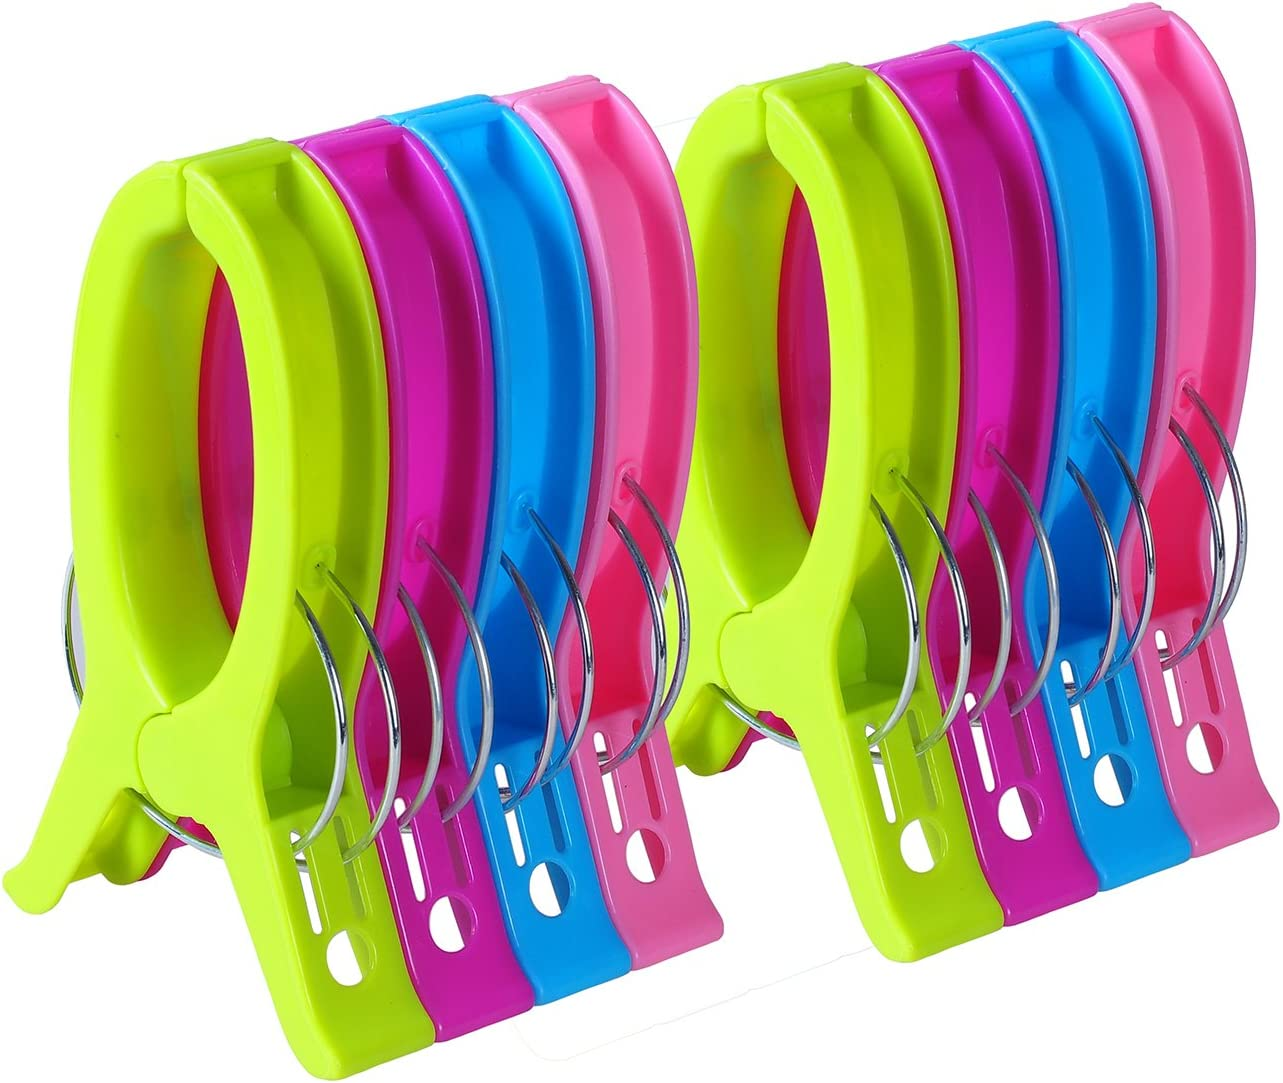 ECROCY 8 Pack Jumbo Size Beach Towel Clips for Beach Chairs Or Lounge Chair - Keep Your Towel from Blowing Away